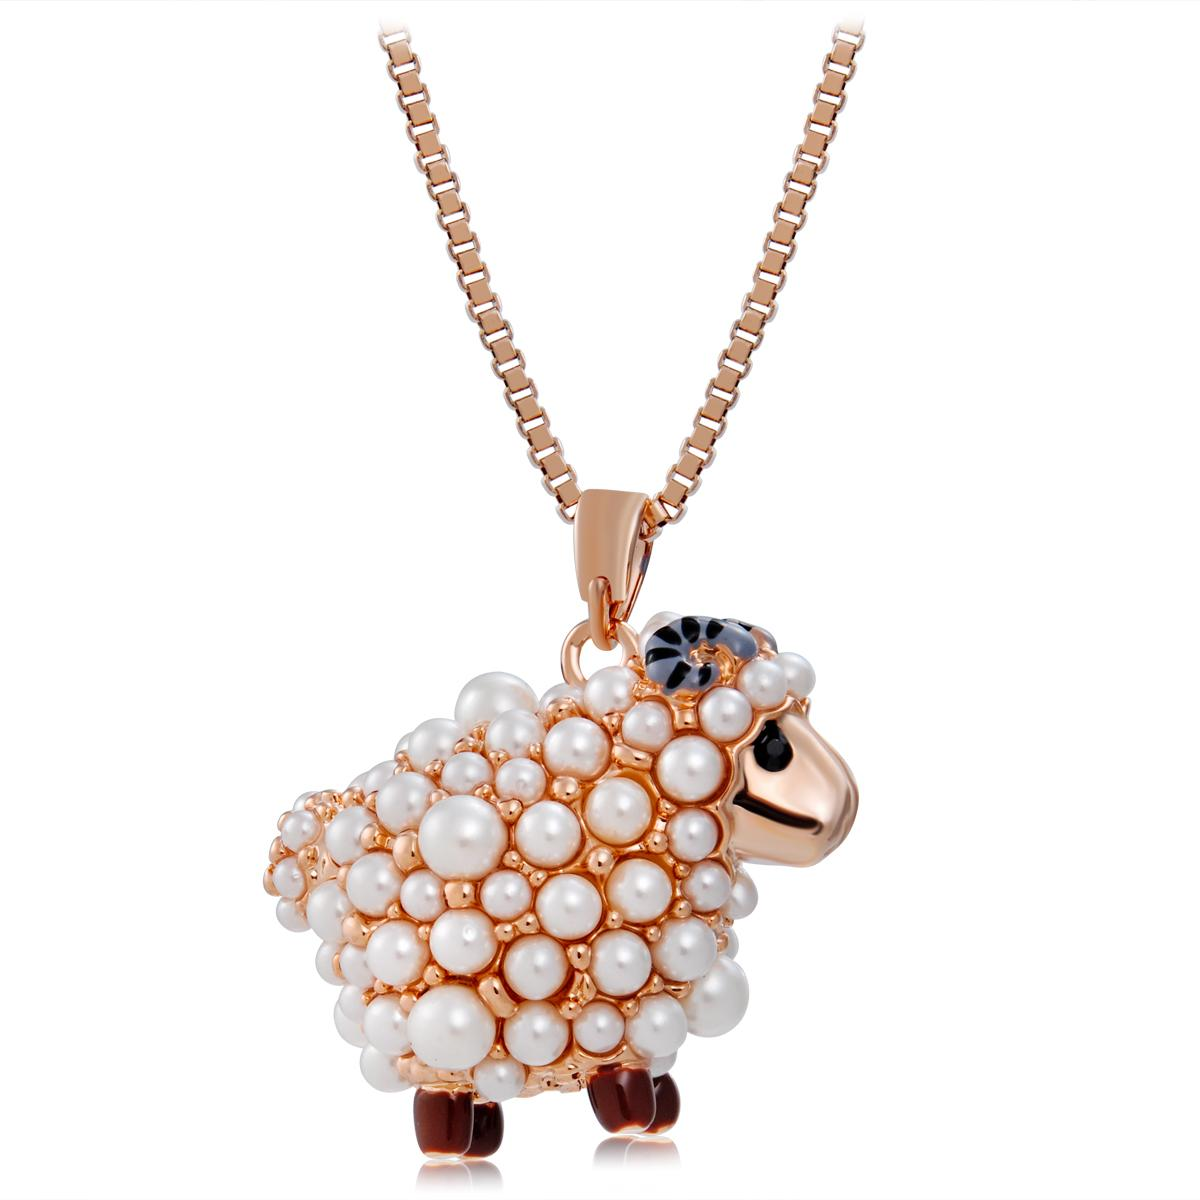 Retail Brand Neoglory Fashipn Jewelry Cute Little Sheep Pendant Necklace For Women Gold Plated White Colour NJ-0001